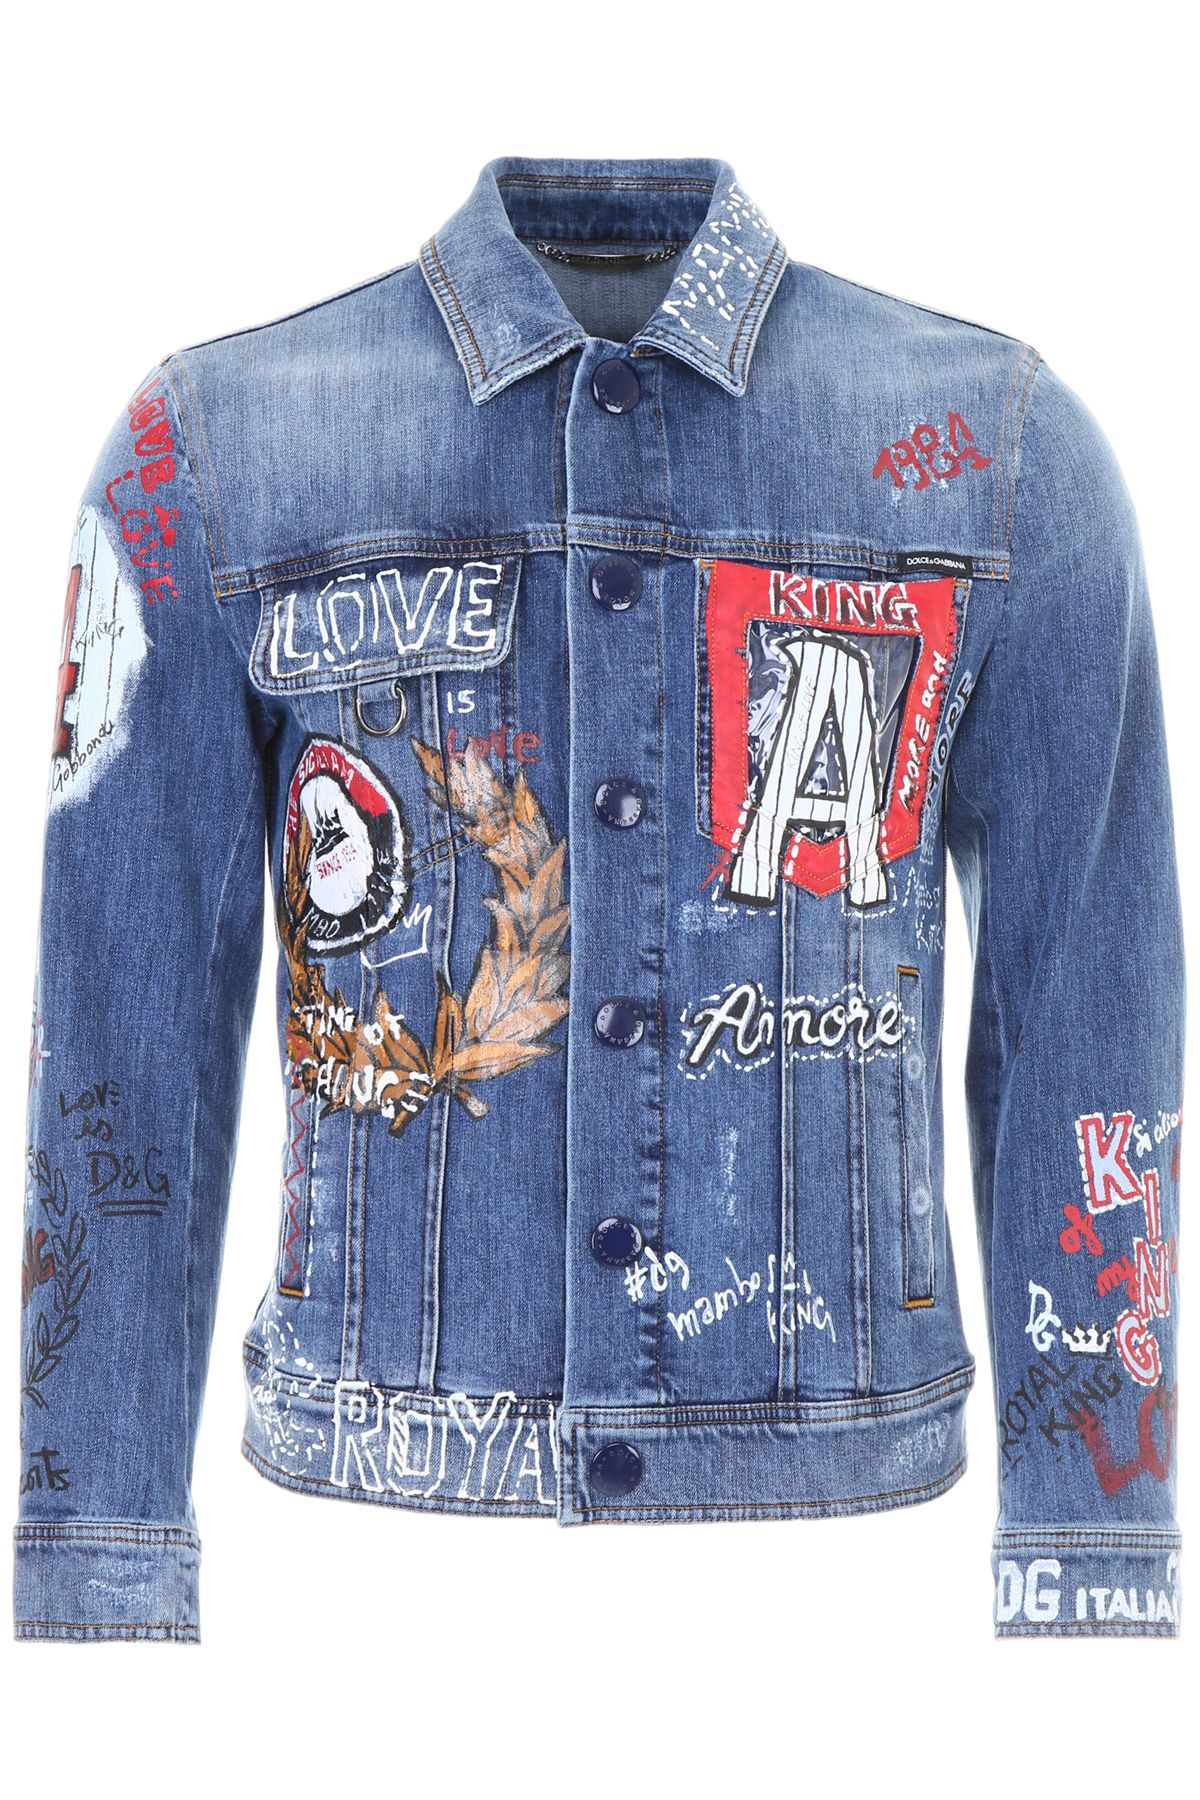 Dolce And Gabbana Blue Denim Drawing Jacket from DOLCE & GABBANA